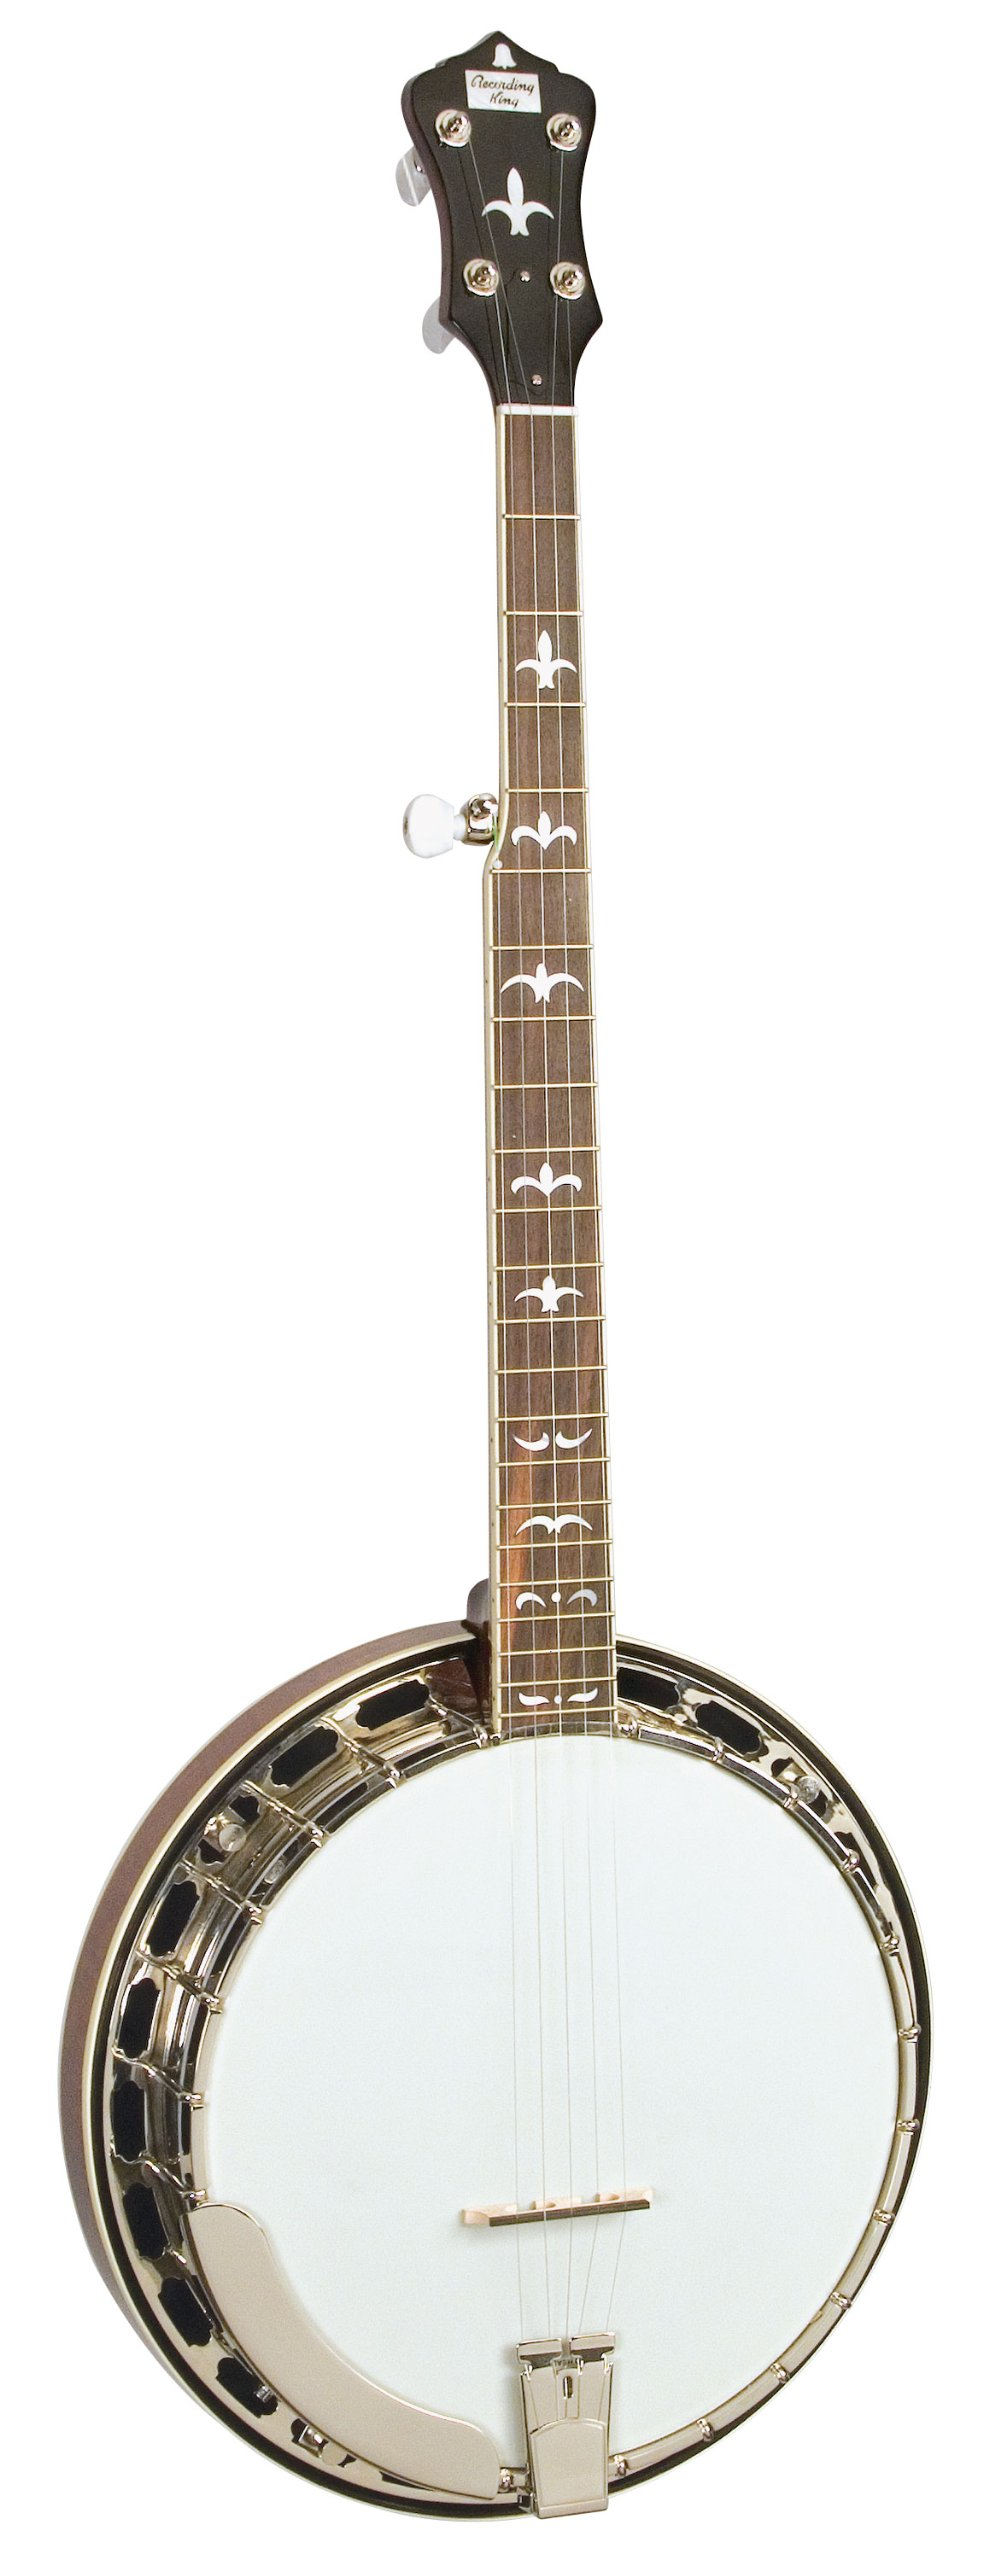 Recording King RK-R35-BR Madison Tone Ring Banjo, Maple Resonator